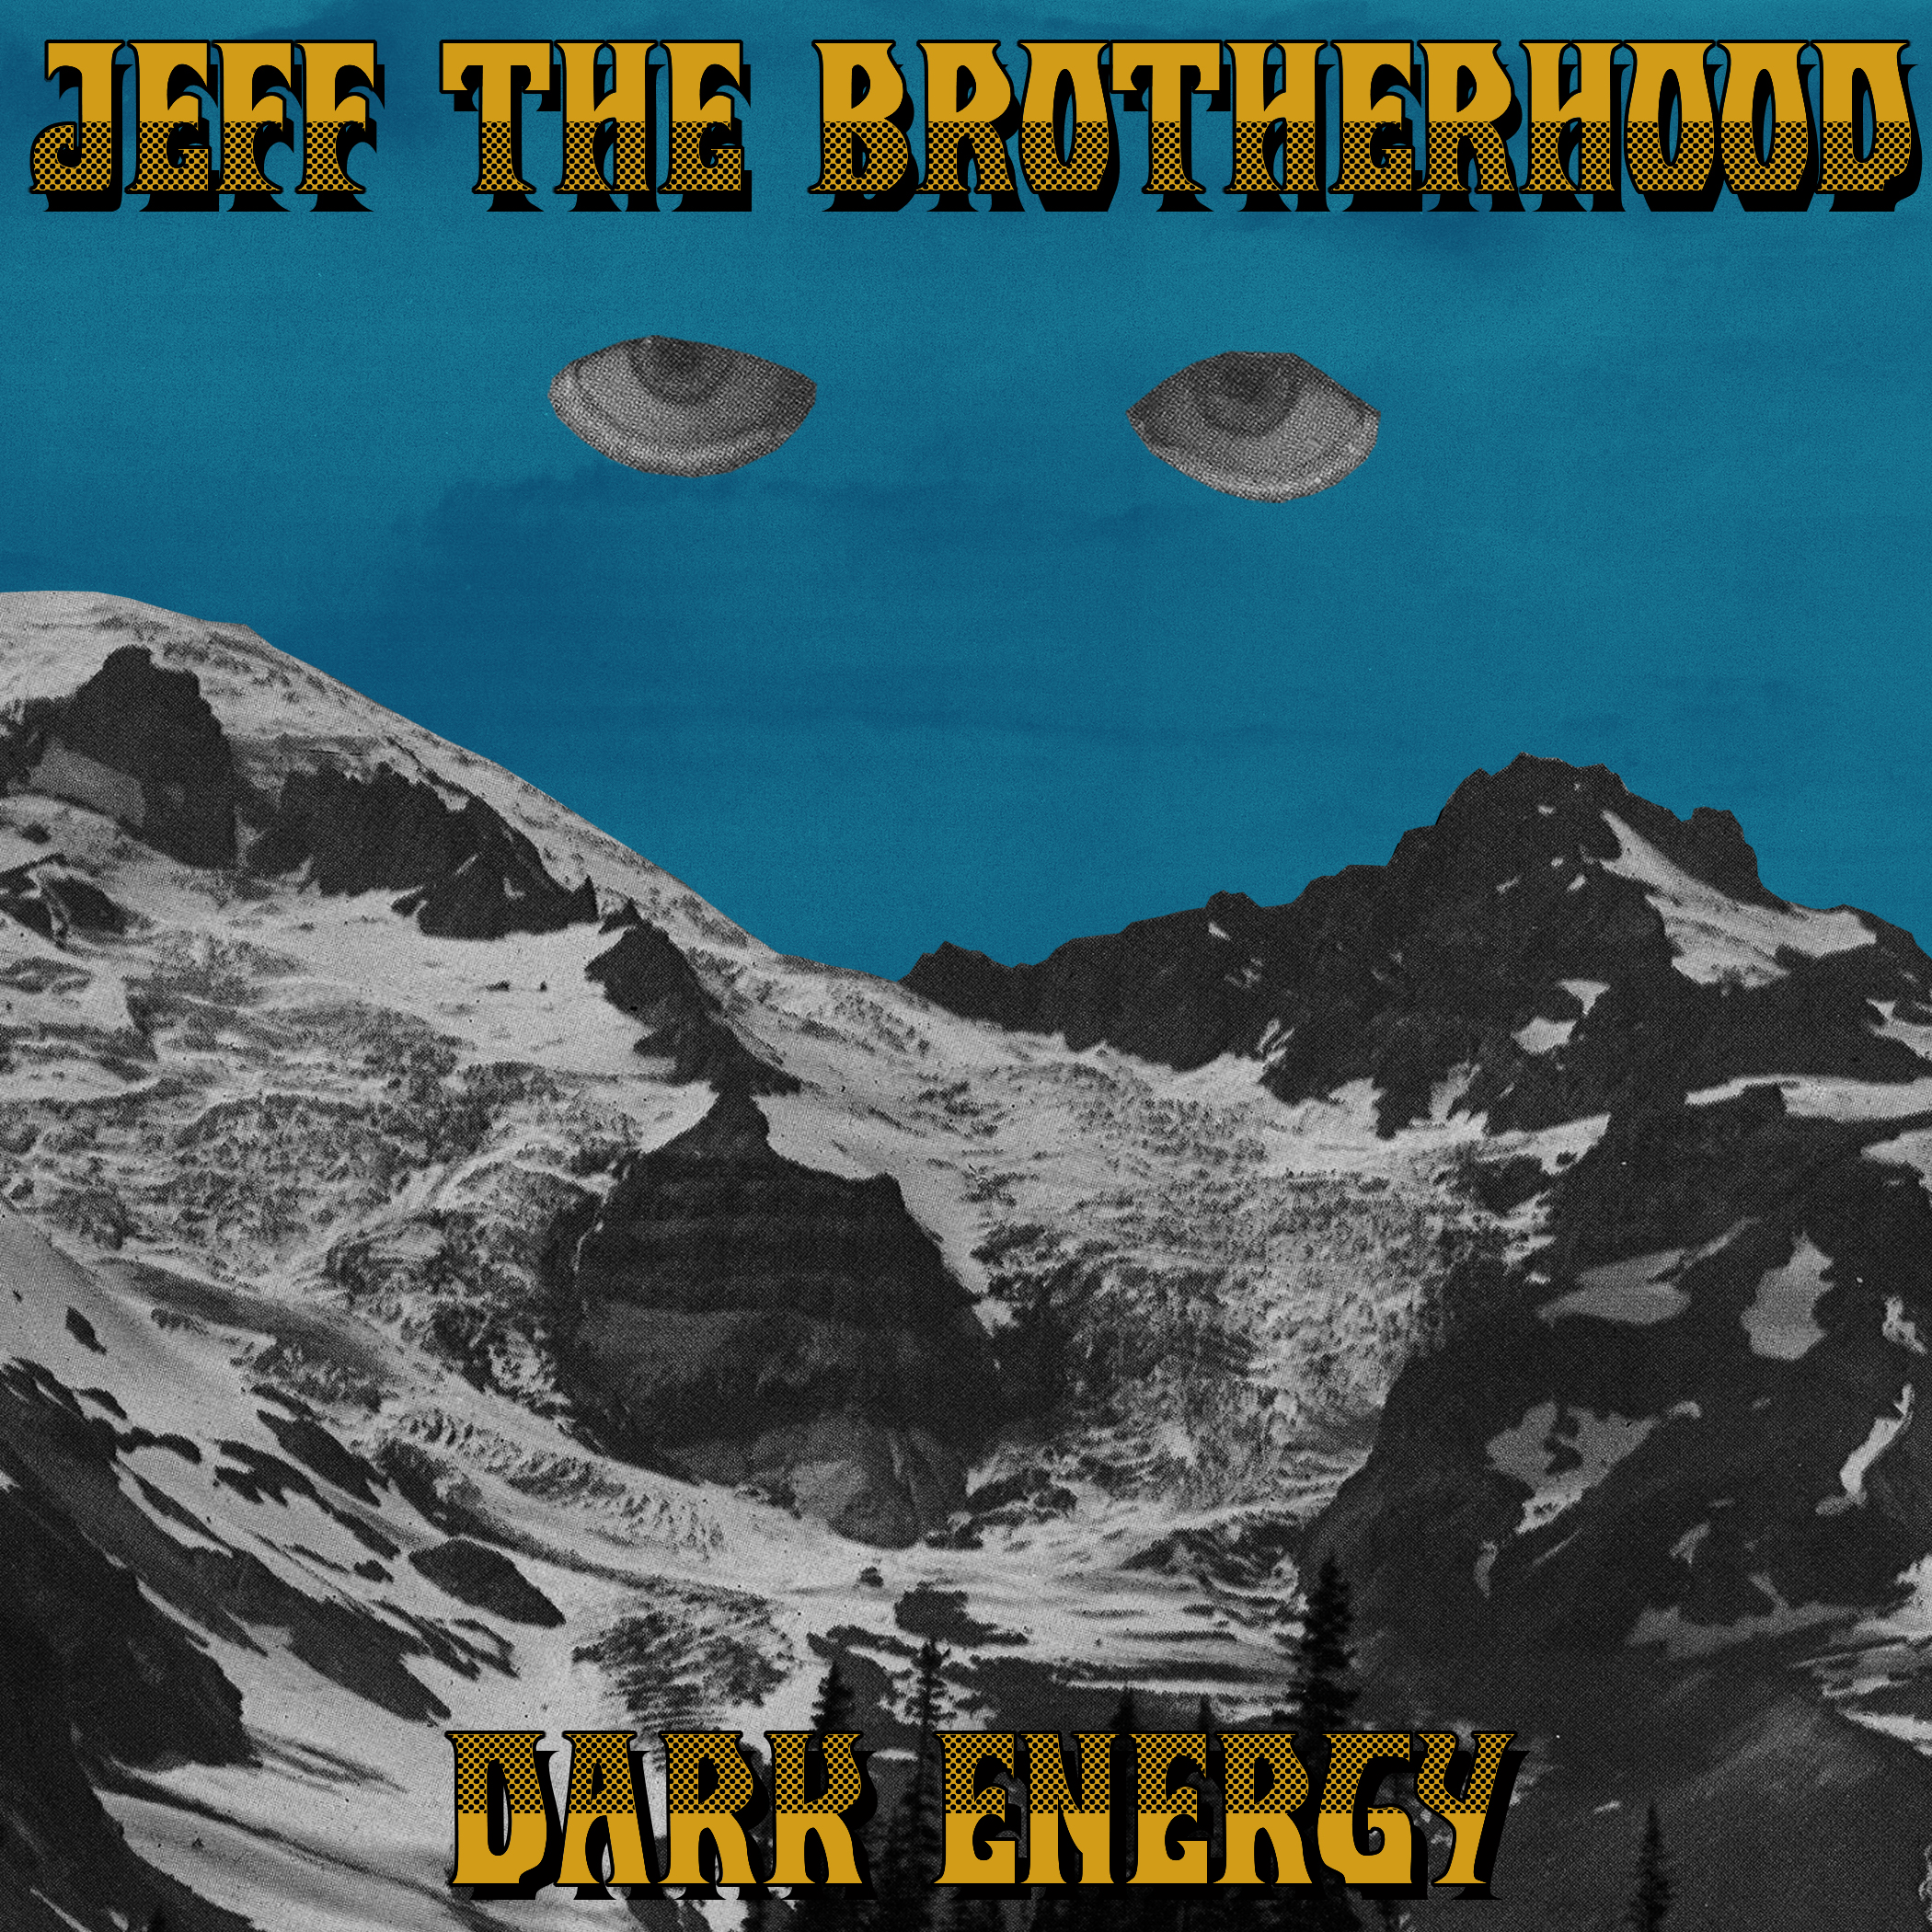 Jeff the Brotherhood - Dark Energy 7""